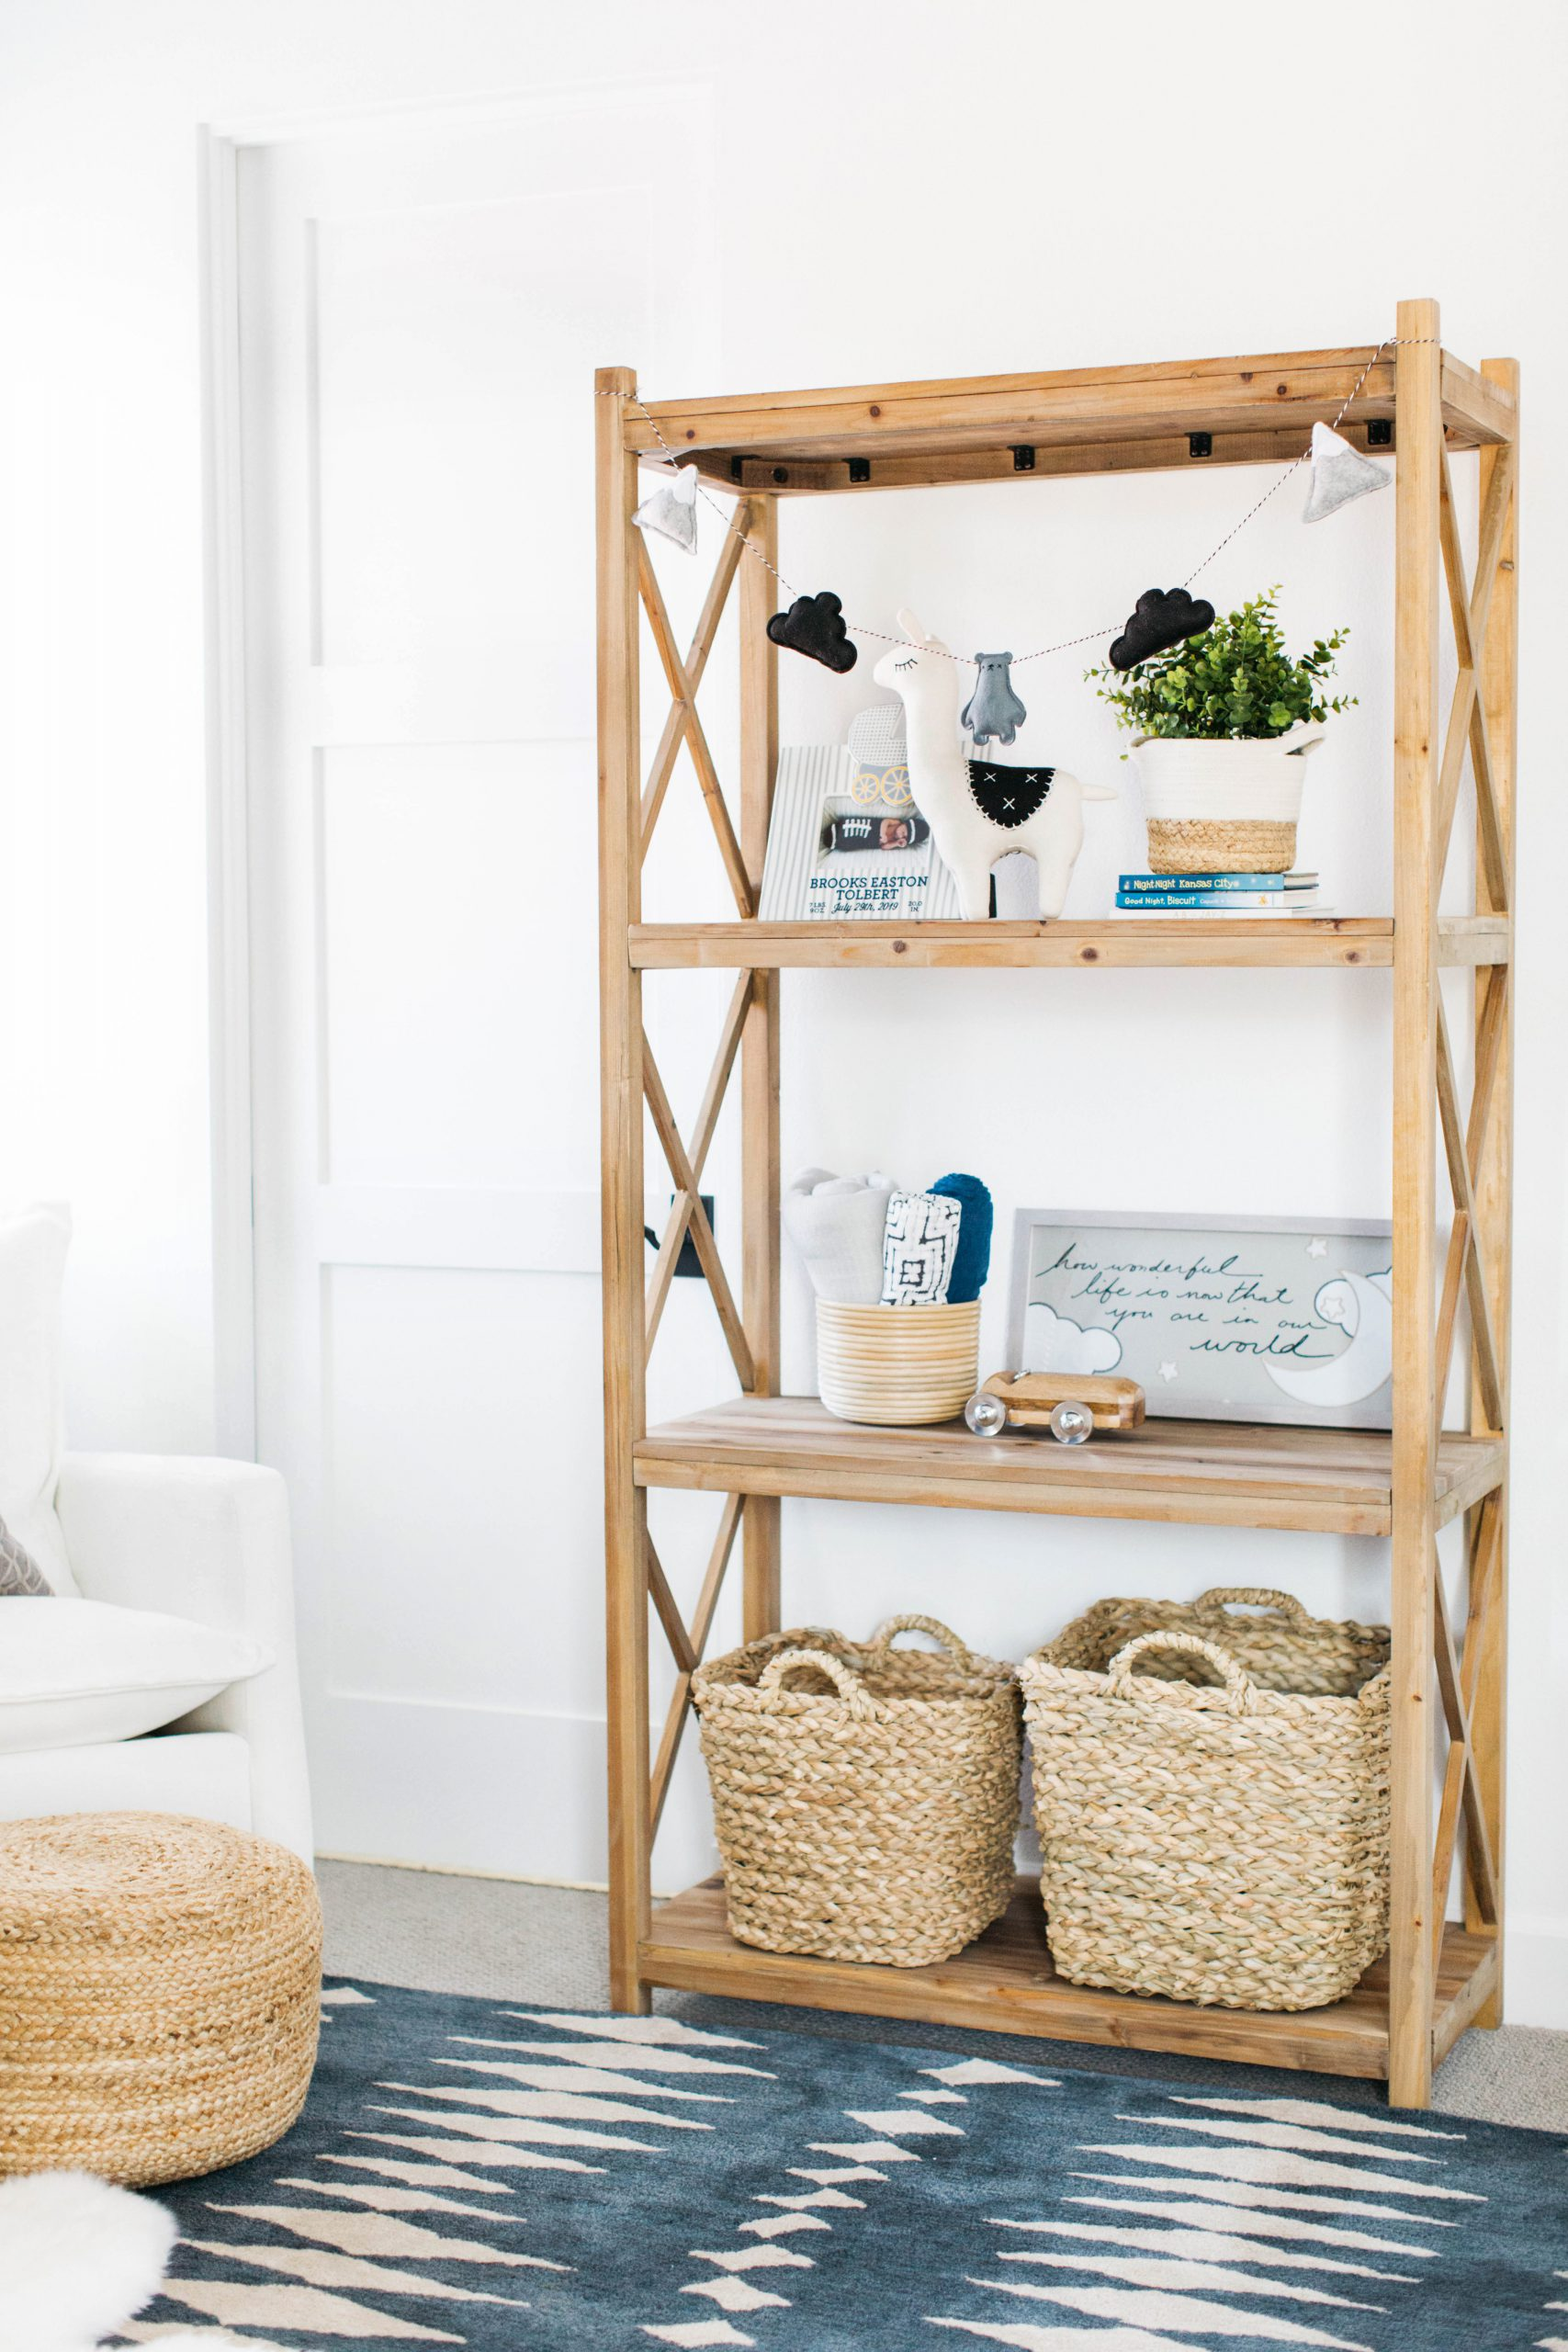 Nursery shelf with rattan baskets